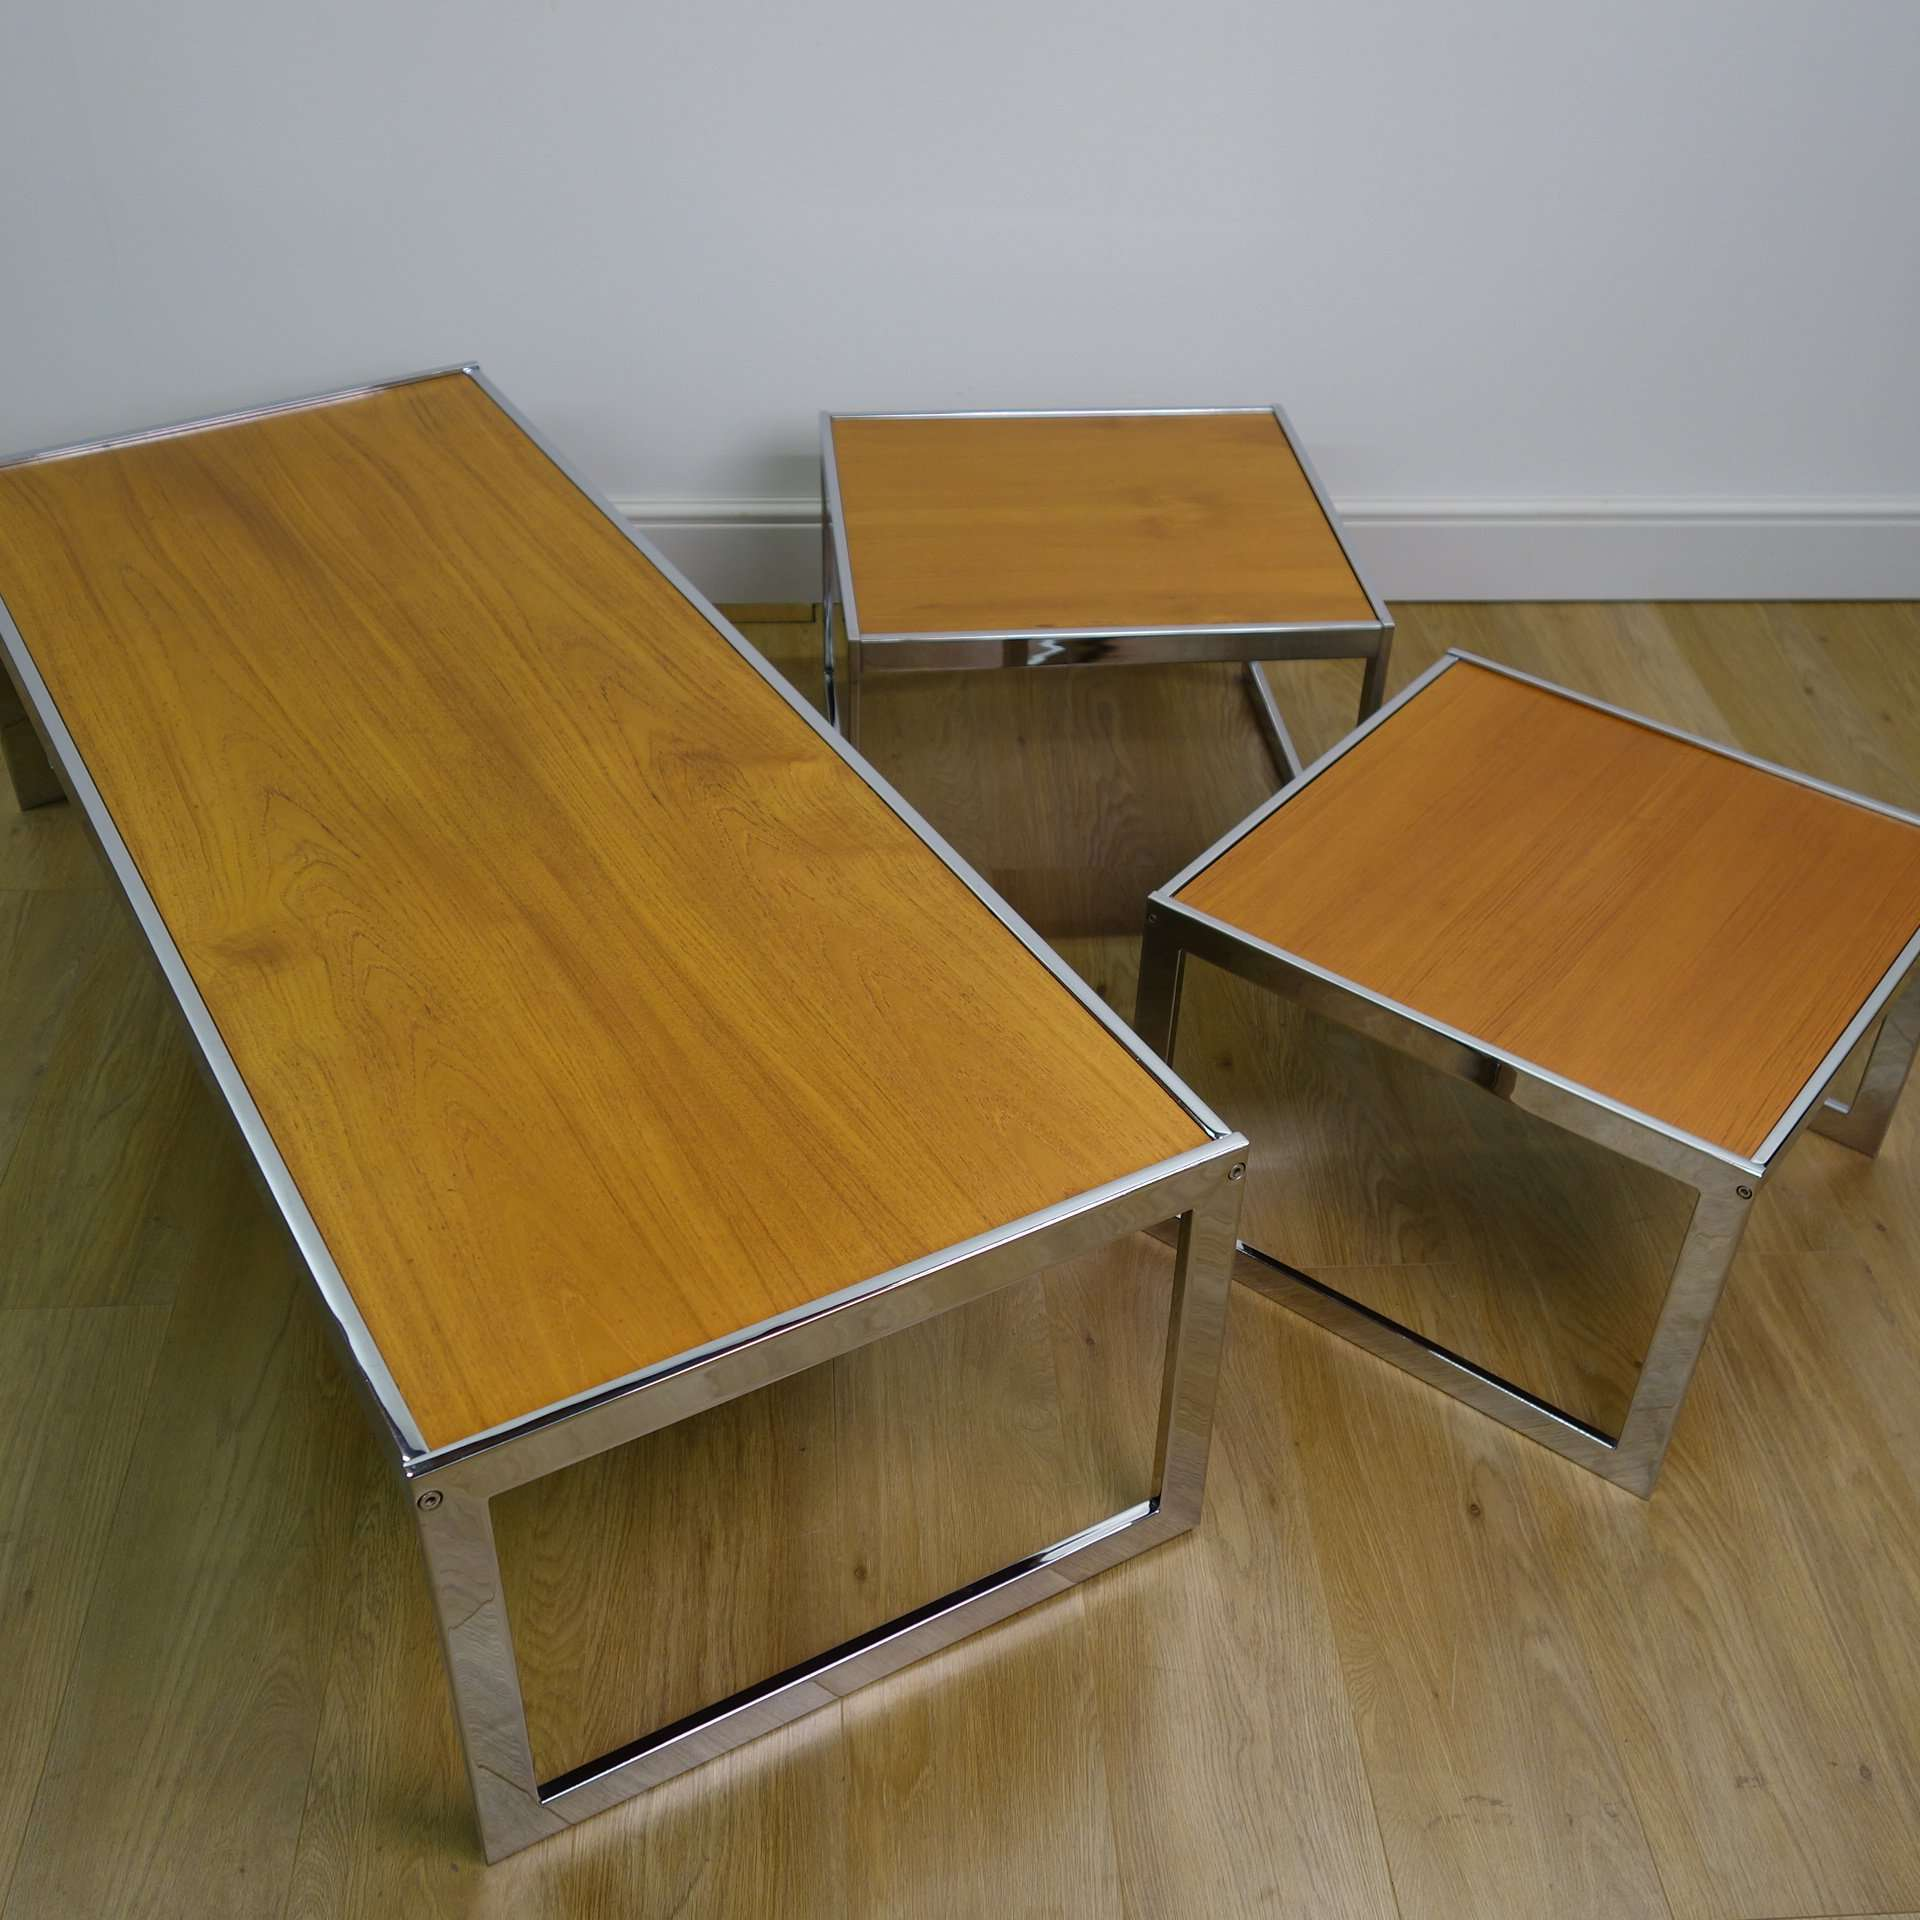 Stunning Teak And Chrome Contemporary Small Coffee Table: Teak And Chrome Coffee Tables By Howard Miller 1970s